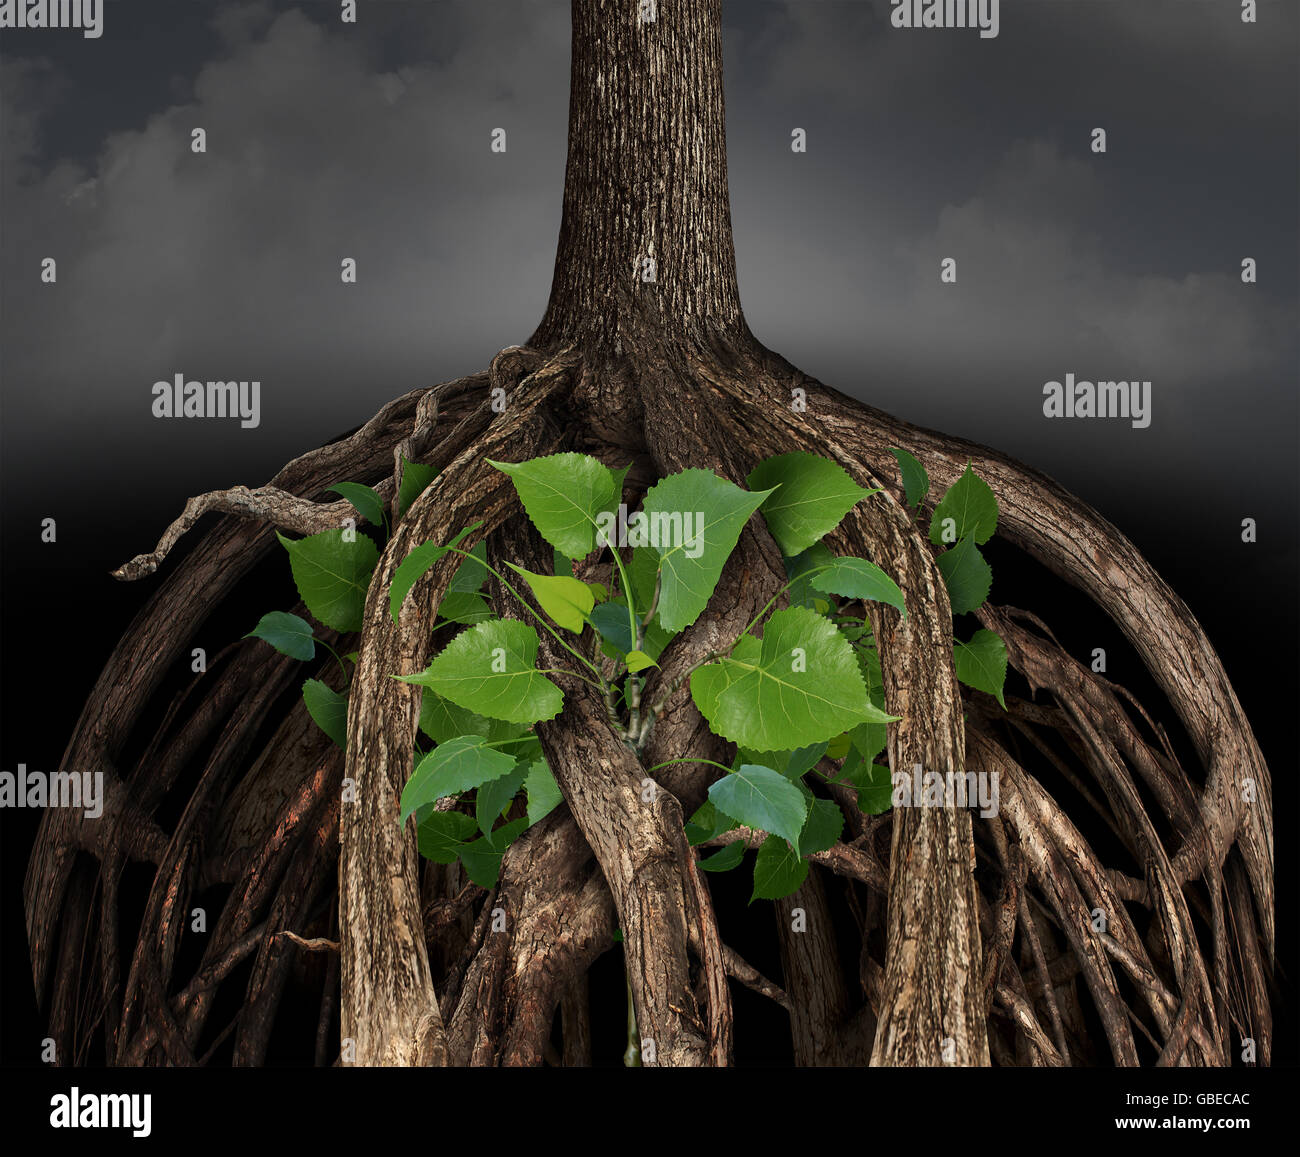 Difficult business growth concept as a large tree root obstacle trapping a determined smaller green sapling representing - Stock Image